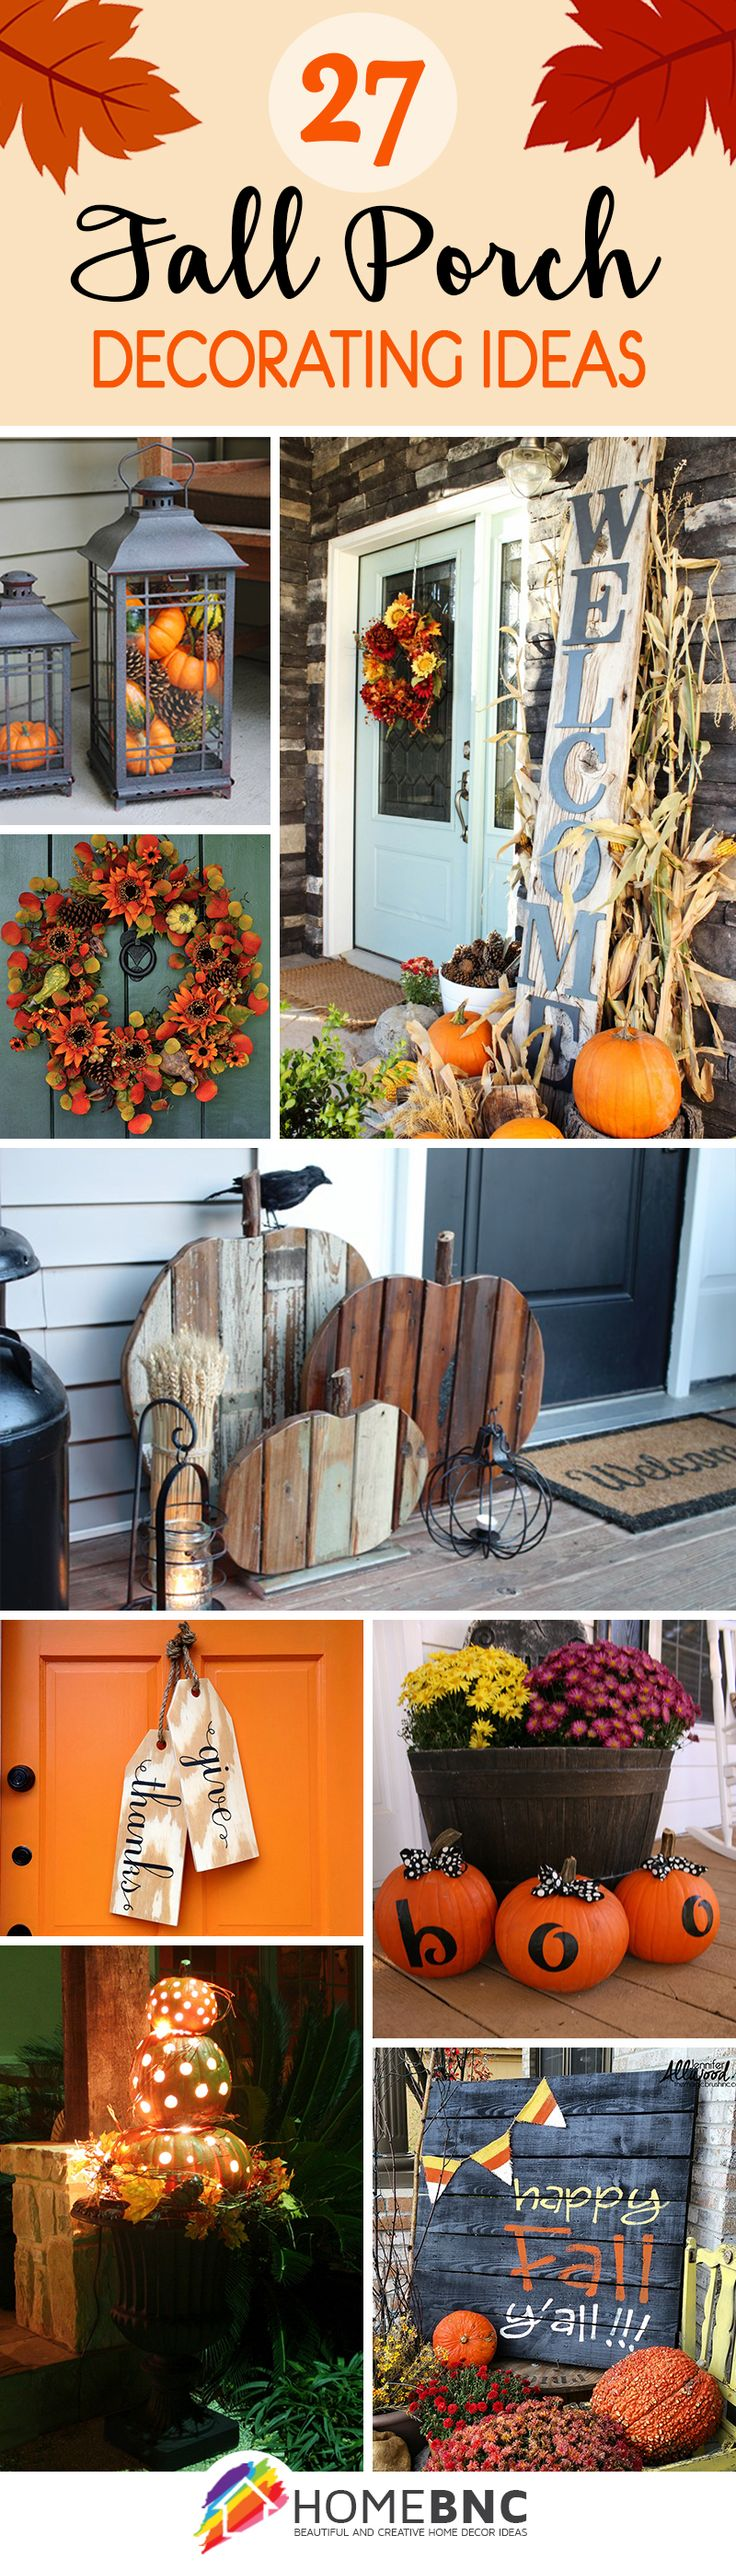 Best 20  Fall crafts ideas on Pinterest   Autumn diy room decor  Leaf  crafts and Fall decorations diyBest 20  Fall crafts ideas on Pinterest   Autumn diy room decor  . Diy Room Decor Ideas Pinterest. Home Design Ideas